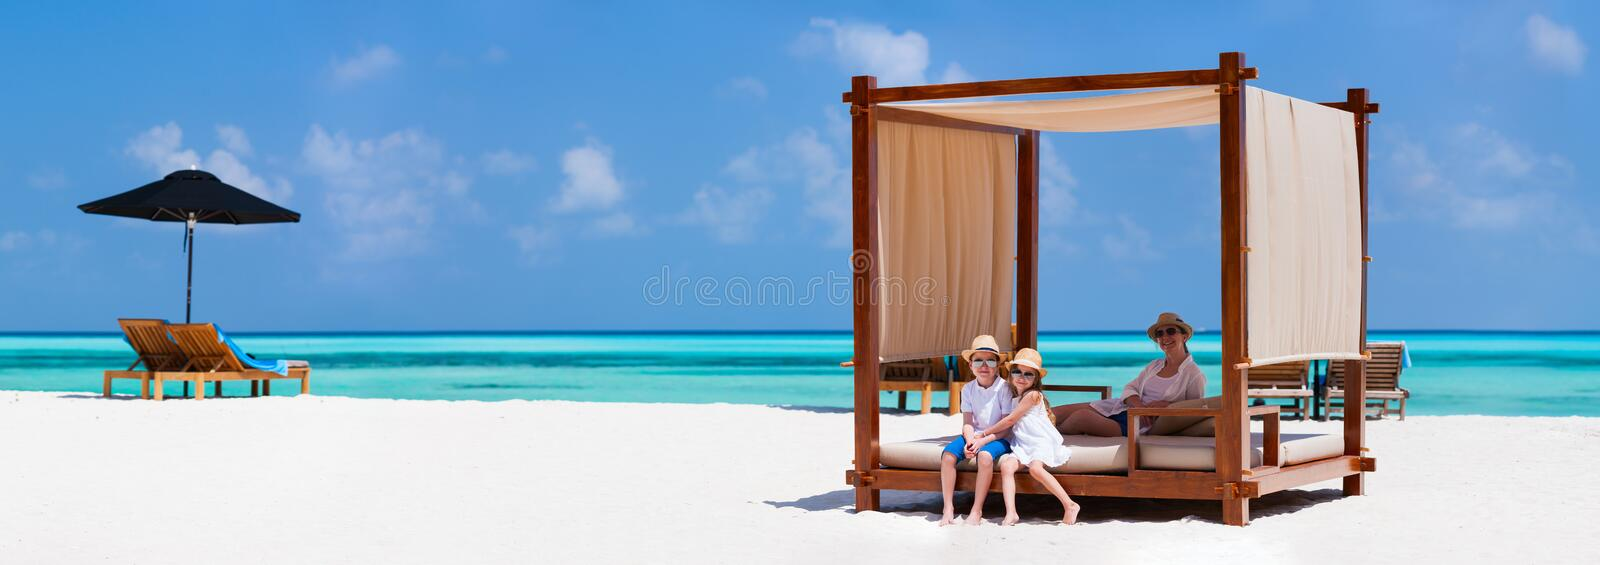 Download Family on summer vacation stock photo. Image of enjoyment - 40163808